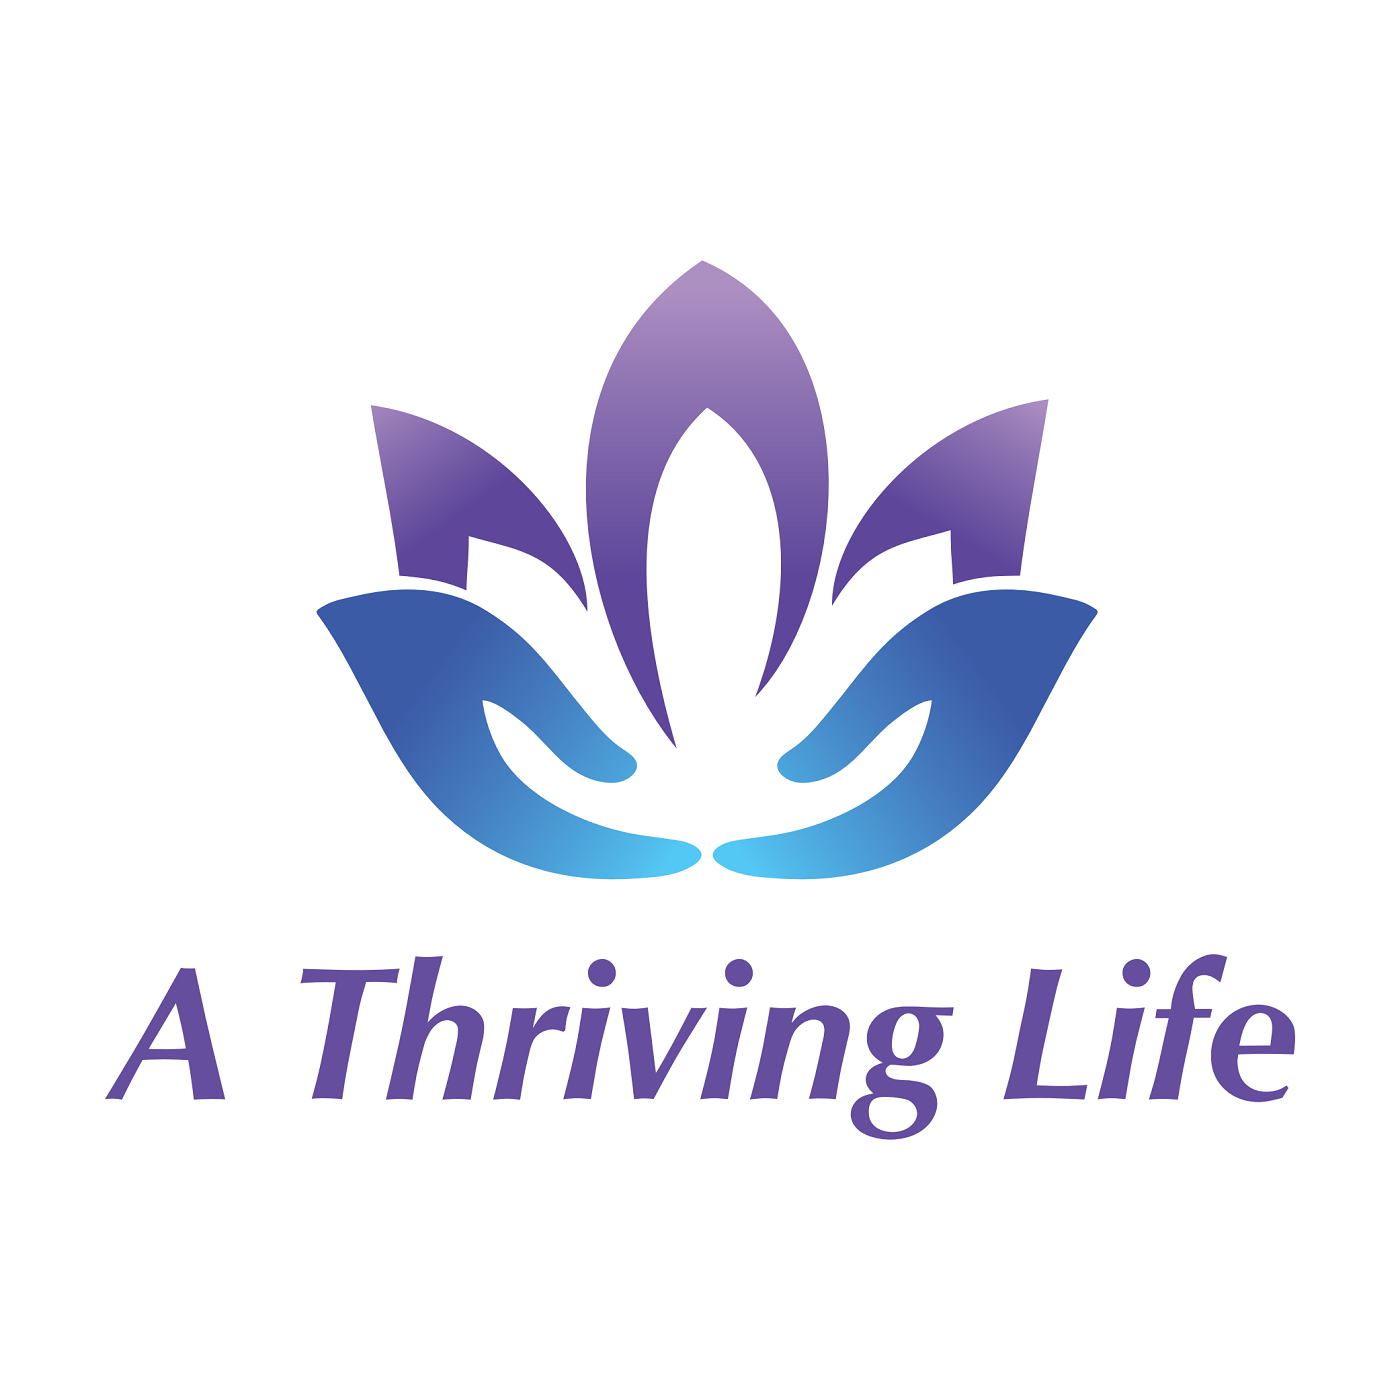 A Thriving Life for Caregivers - June 14, 2019